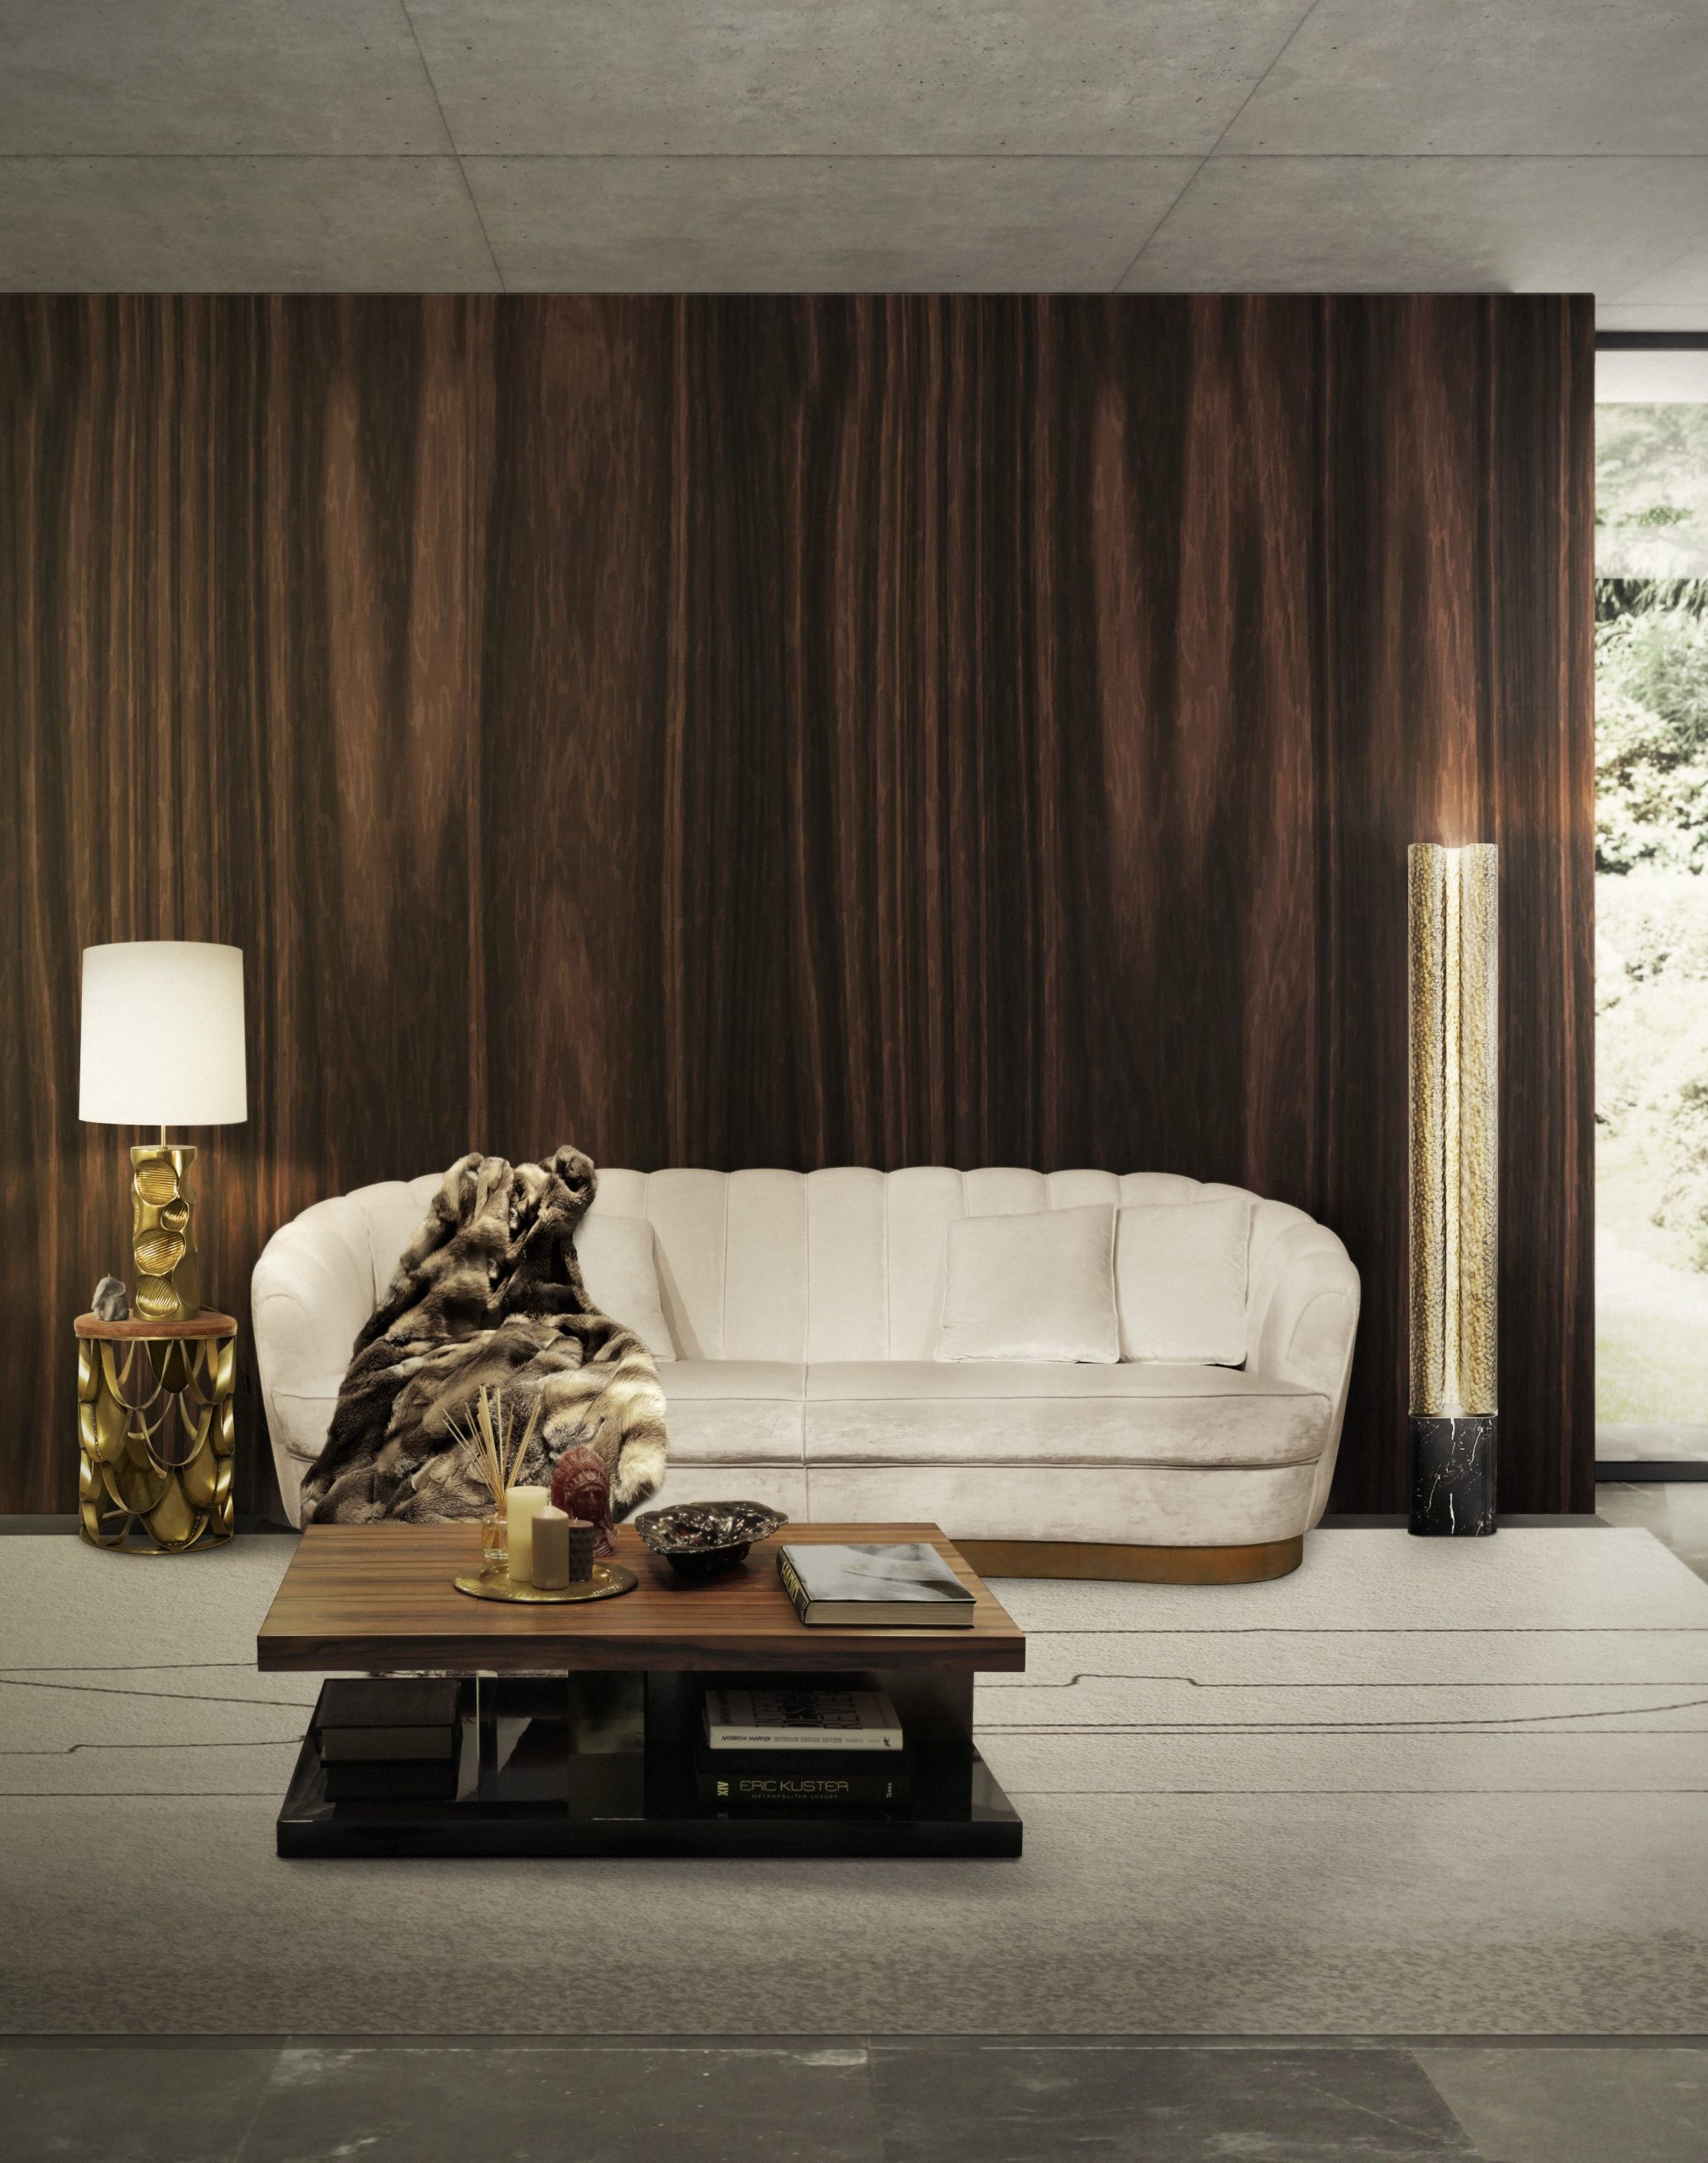 Earth Tones - How To Pick The Best Sofas To Blend Well With This Trend  earth tones Earth Tones – How To Pick The Best Sofas To Blend Well With This Trend brabbu ambience press 60 HR 1 scaled